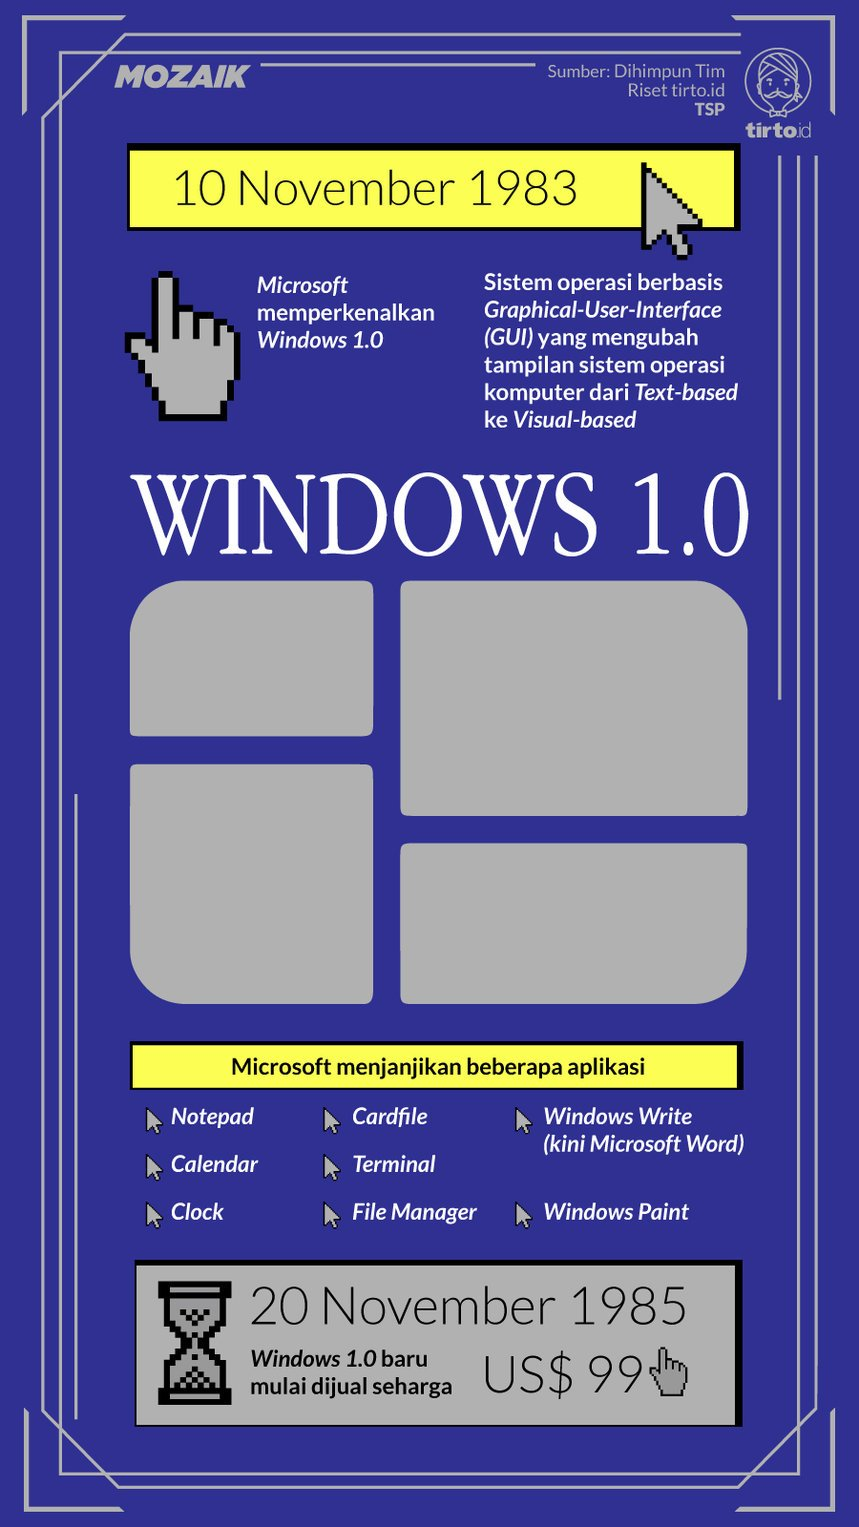 Infografik Mozaik Windows 1.0